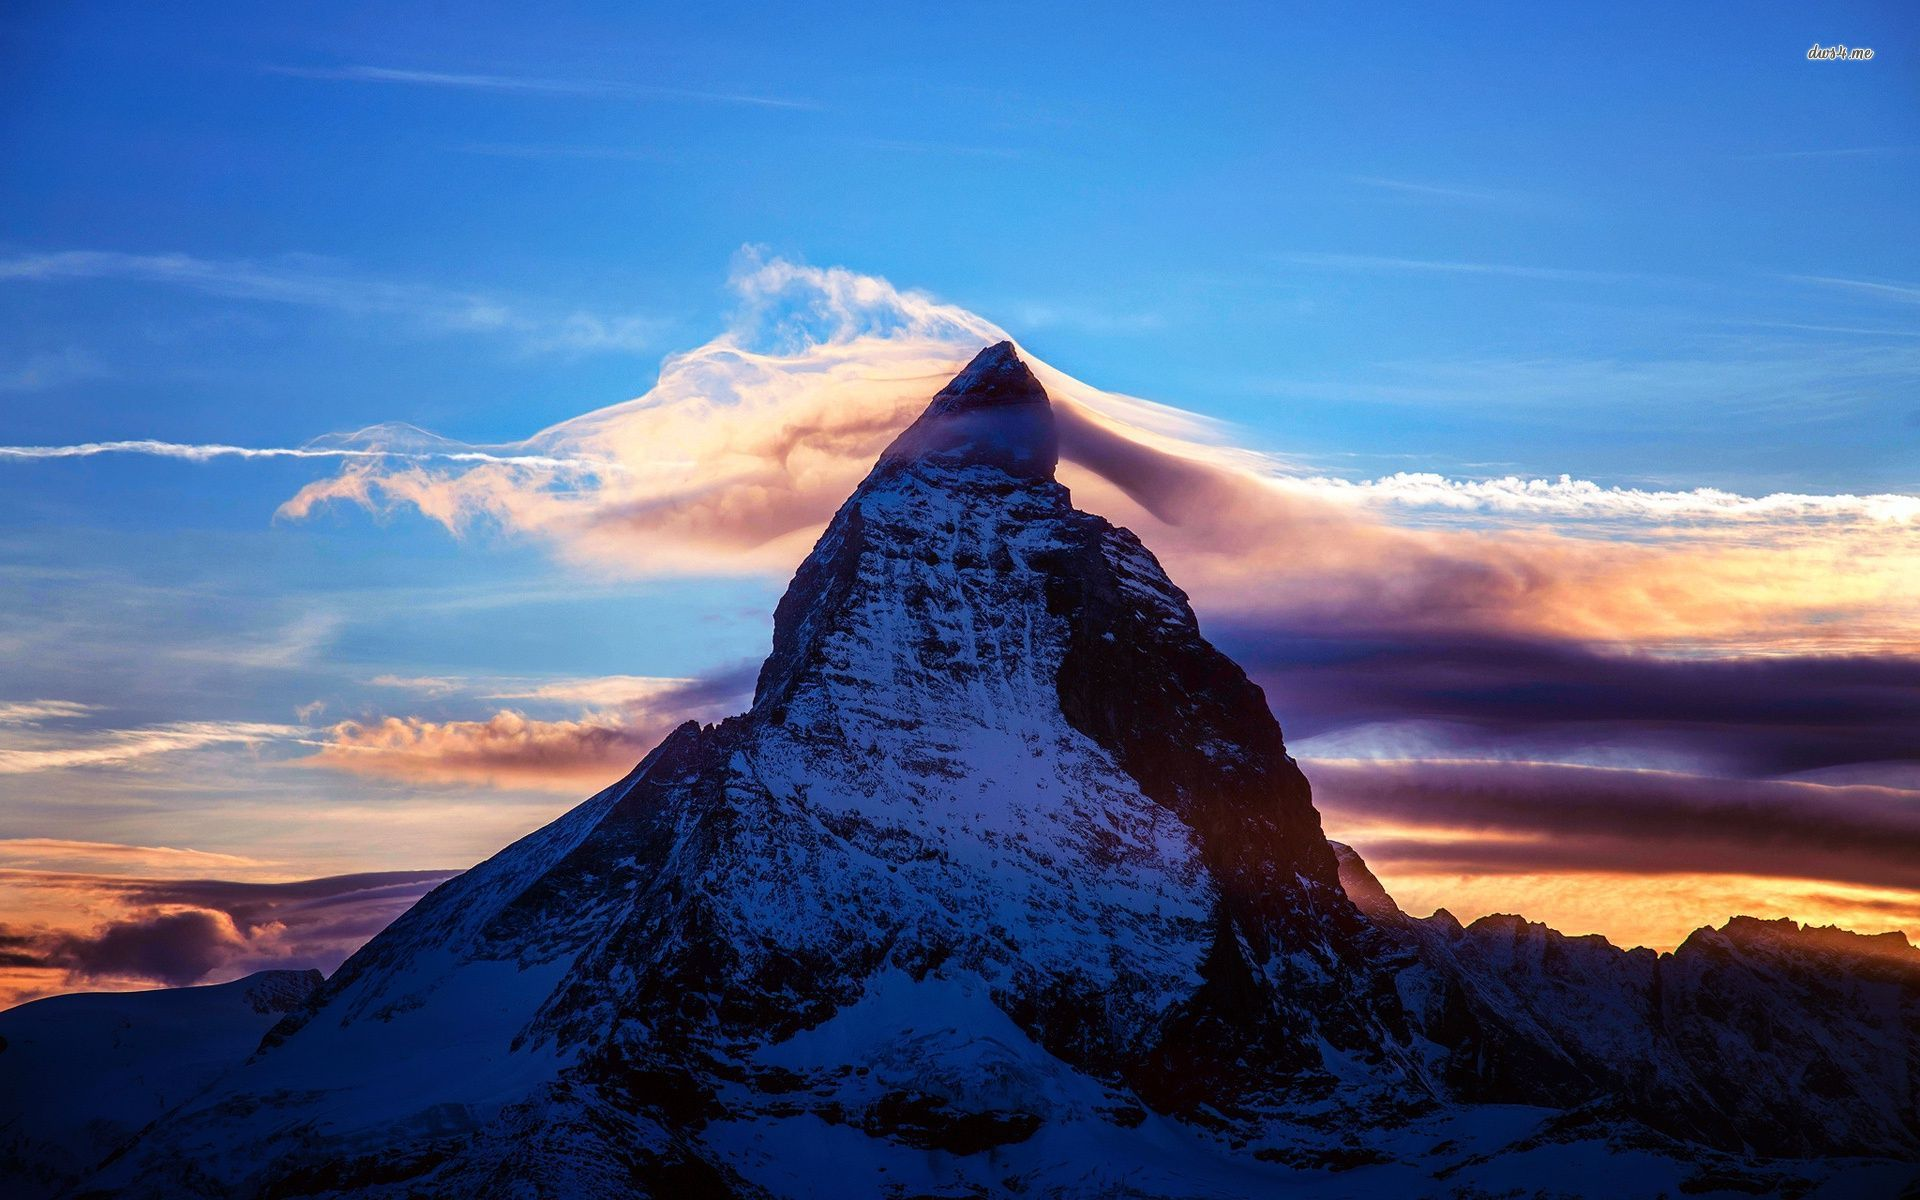 Hd Background Wallpaper 800x600: Matterhorn Wallpaper